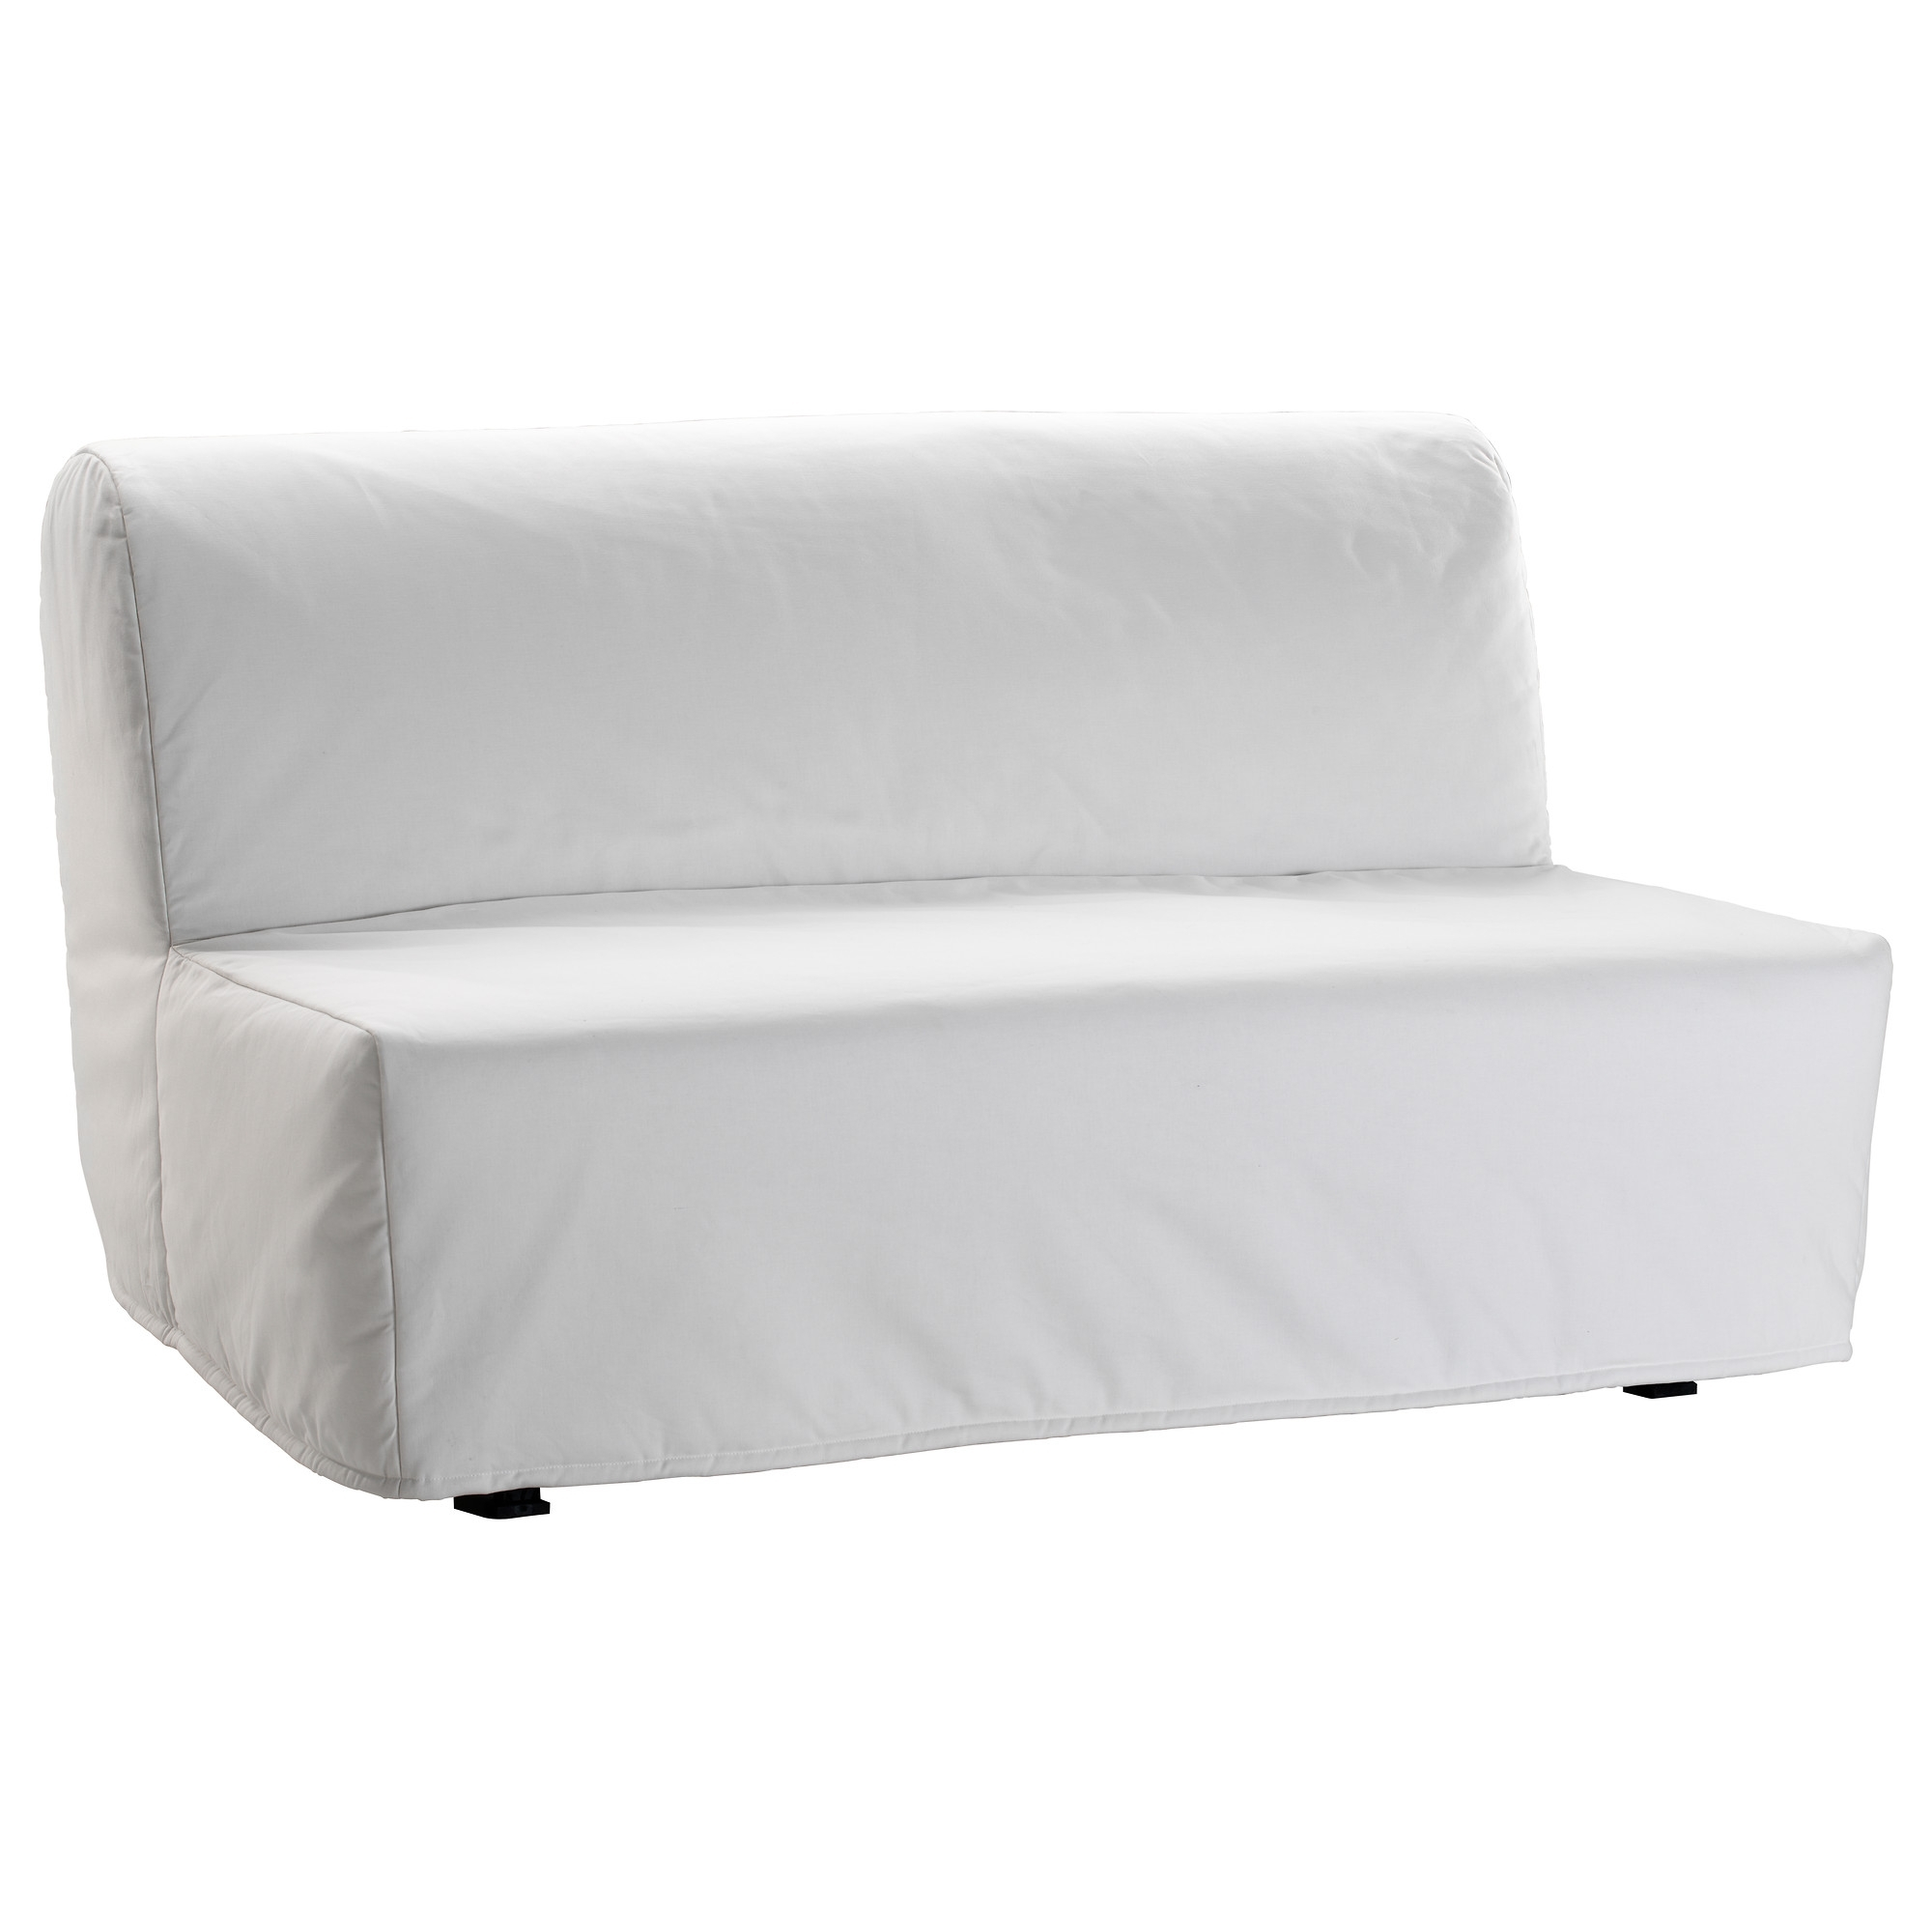 Lycksele Lövås Sleeper Sofa – Ransta White – Ikea Regarding Most Recently Released Ikea Loveseat Sleeper Sofas (View 3 of 20)